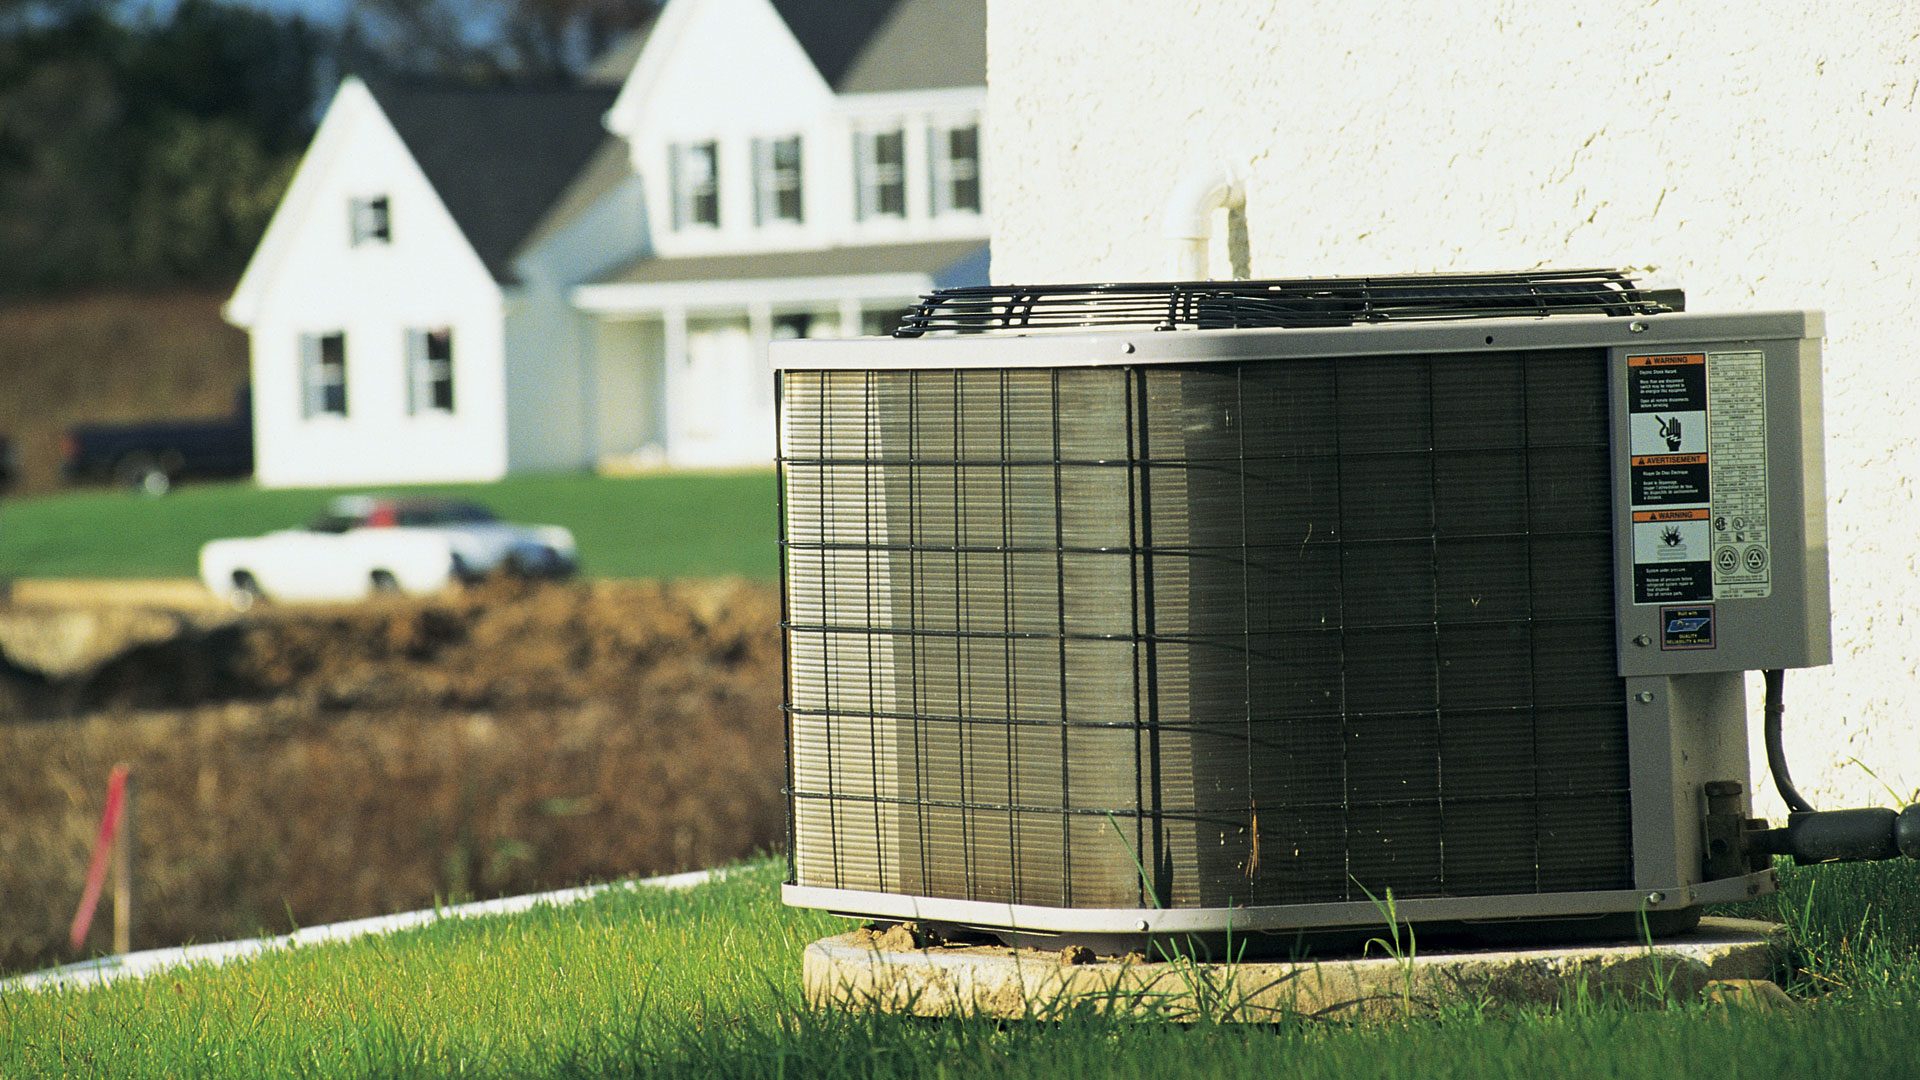 What Are The Advantages of Inspecting an AC Routinely?